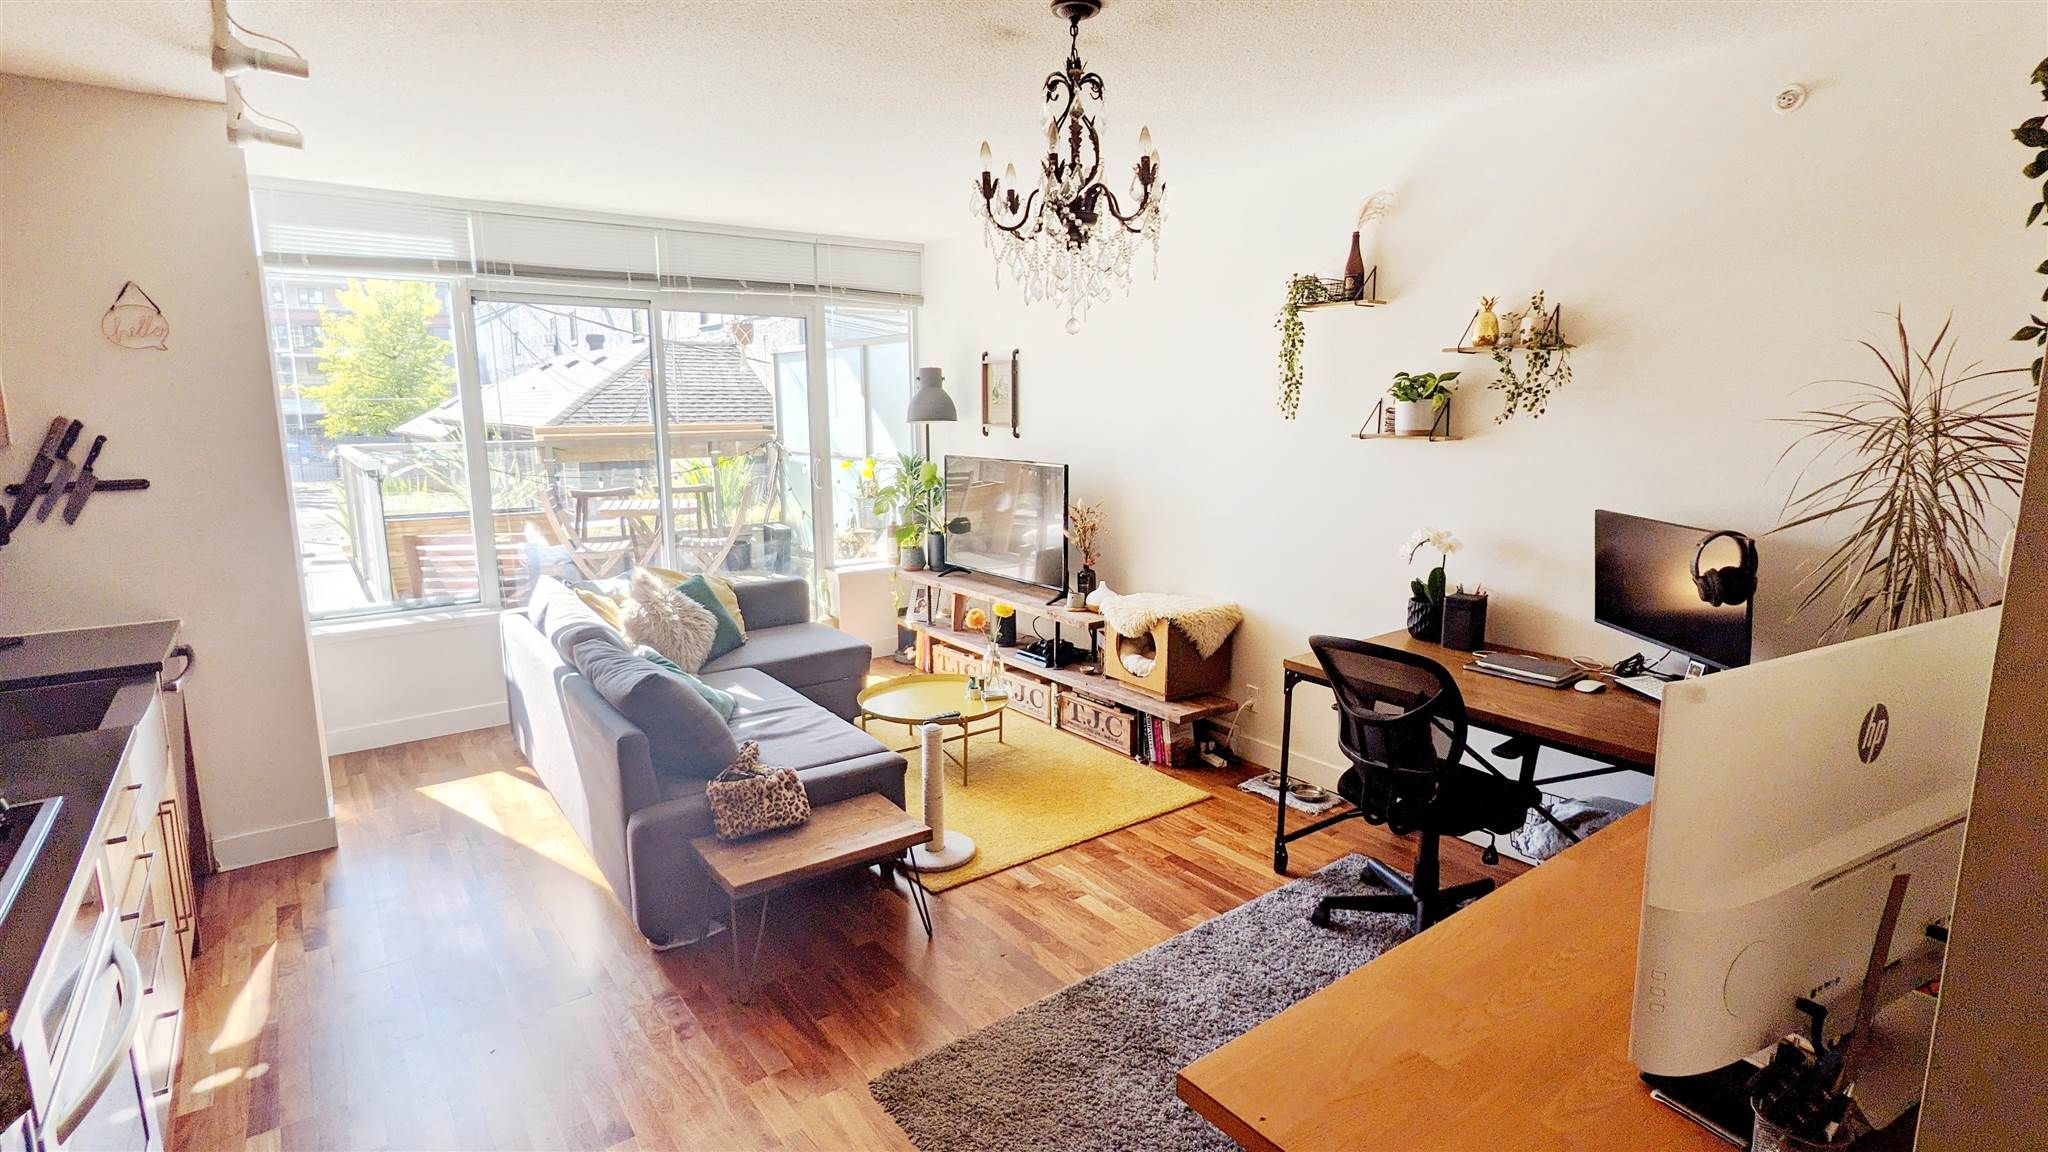 """Main Photo: 373 250 E 6TH Avenue in Vancouver: Mount Pleasant VE Condo for sale in """"THE DISTRICT"""" (Vancouver East)  : MLS®# R2595941"""